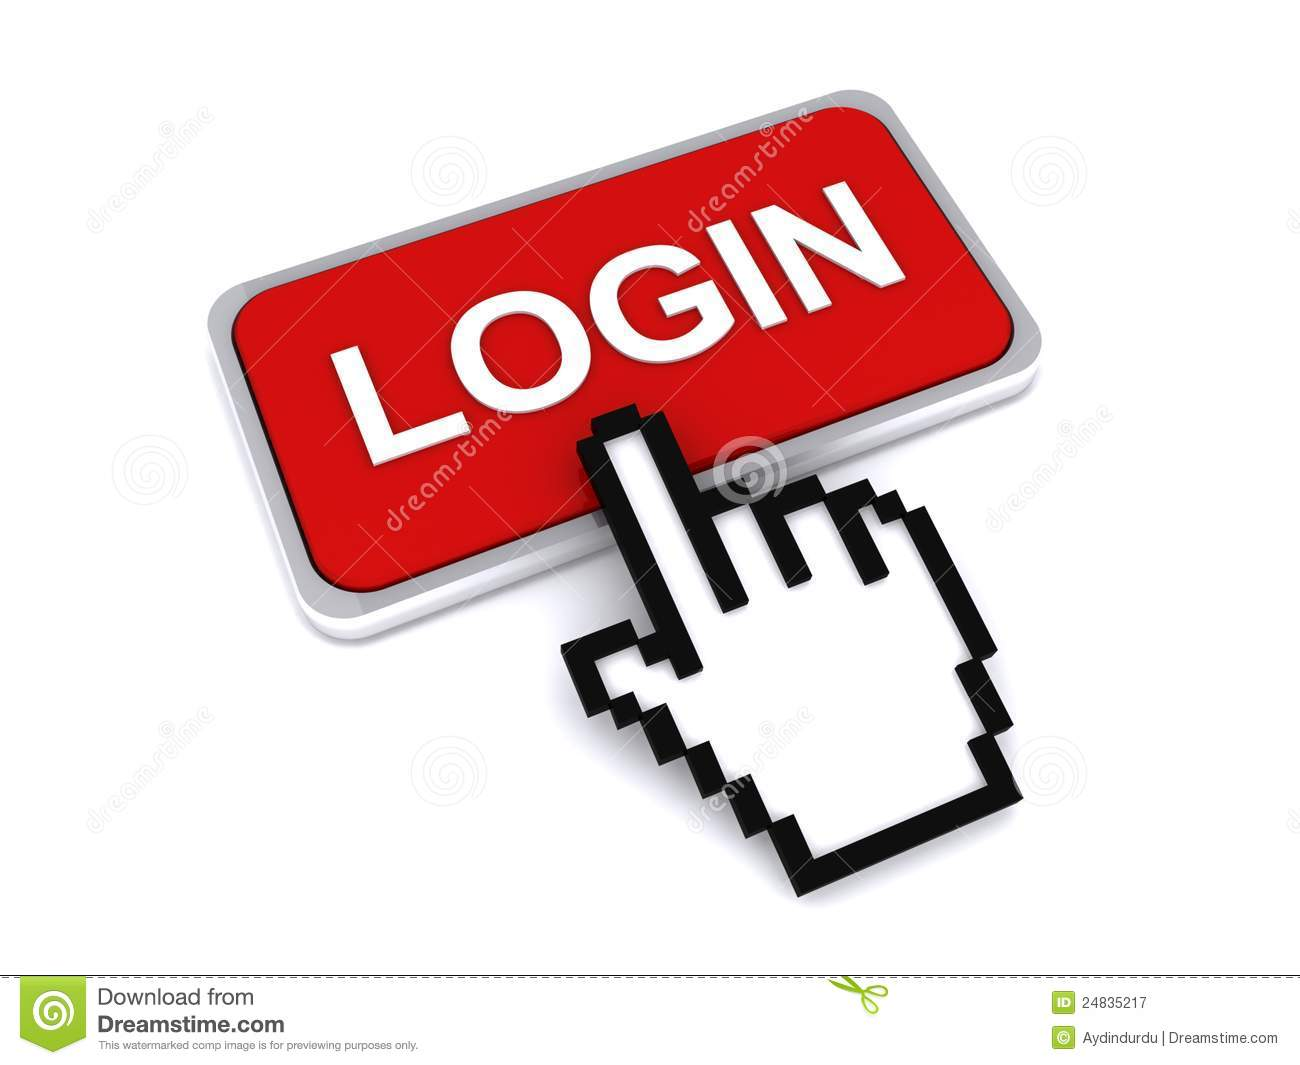 Login and cursor